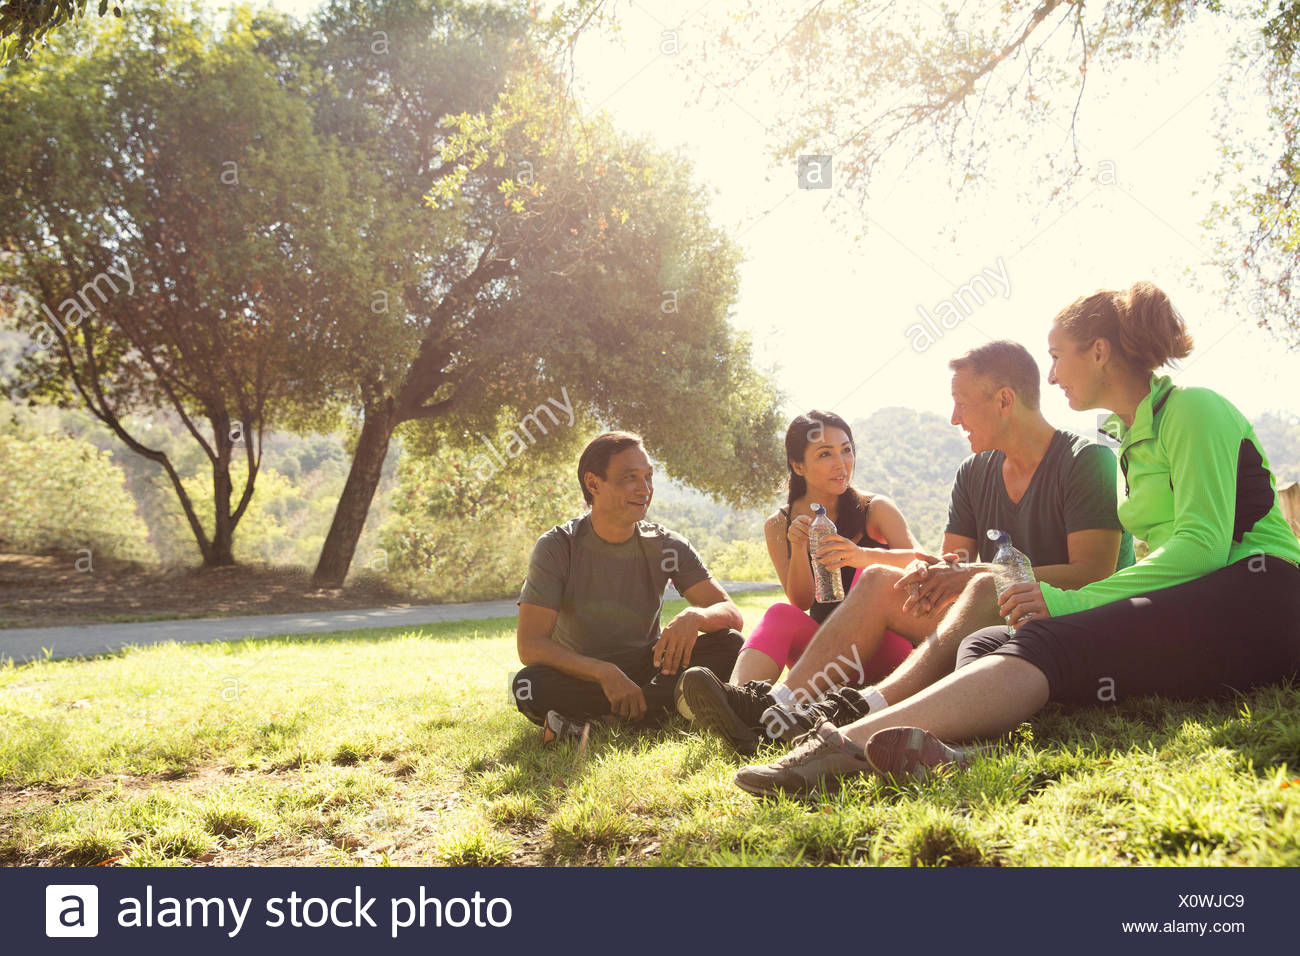 Four mature male and female runners sitting chatting in park - Stock Image